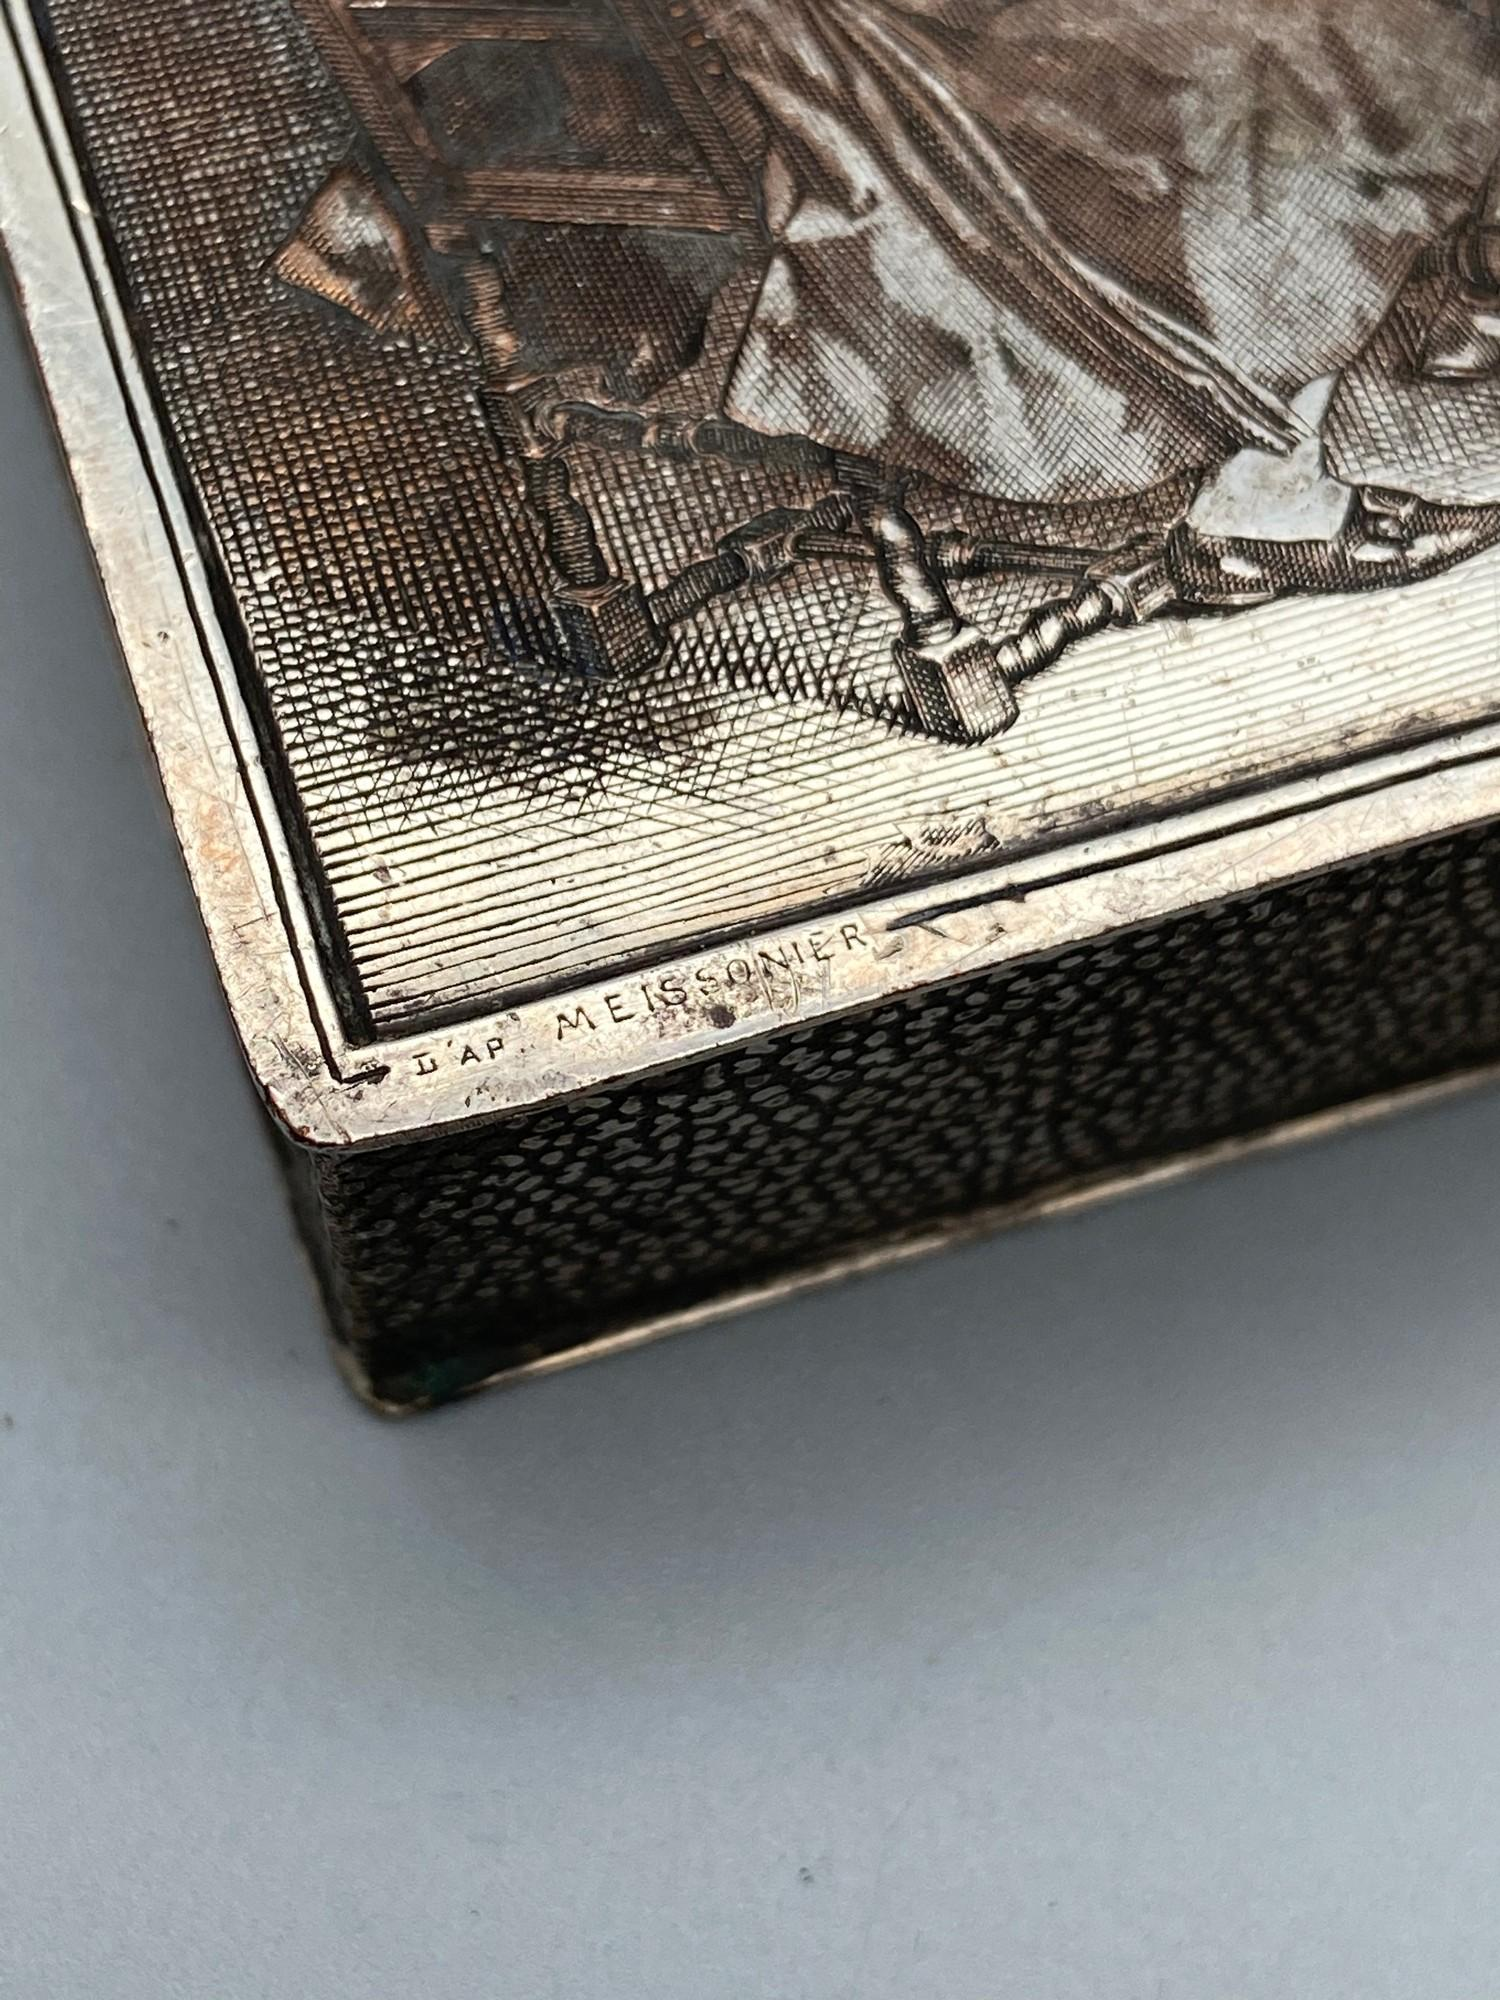 Lot 55 - A Very rare and unusual cigarette box depicting Meissonier- Les Trois Fumeurs. Showing an etched